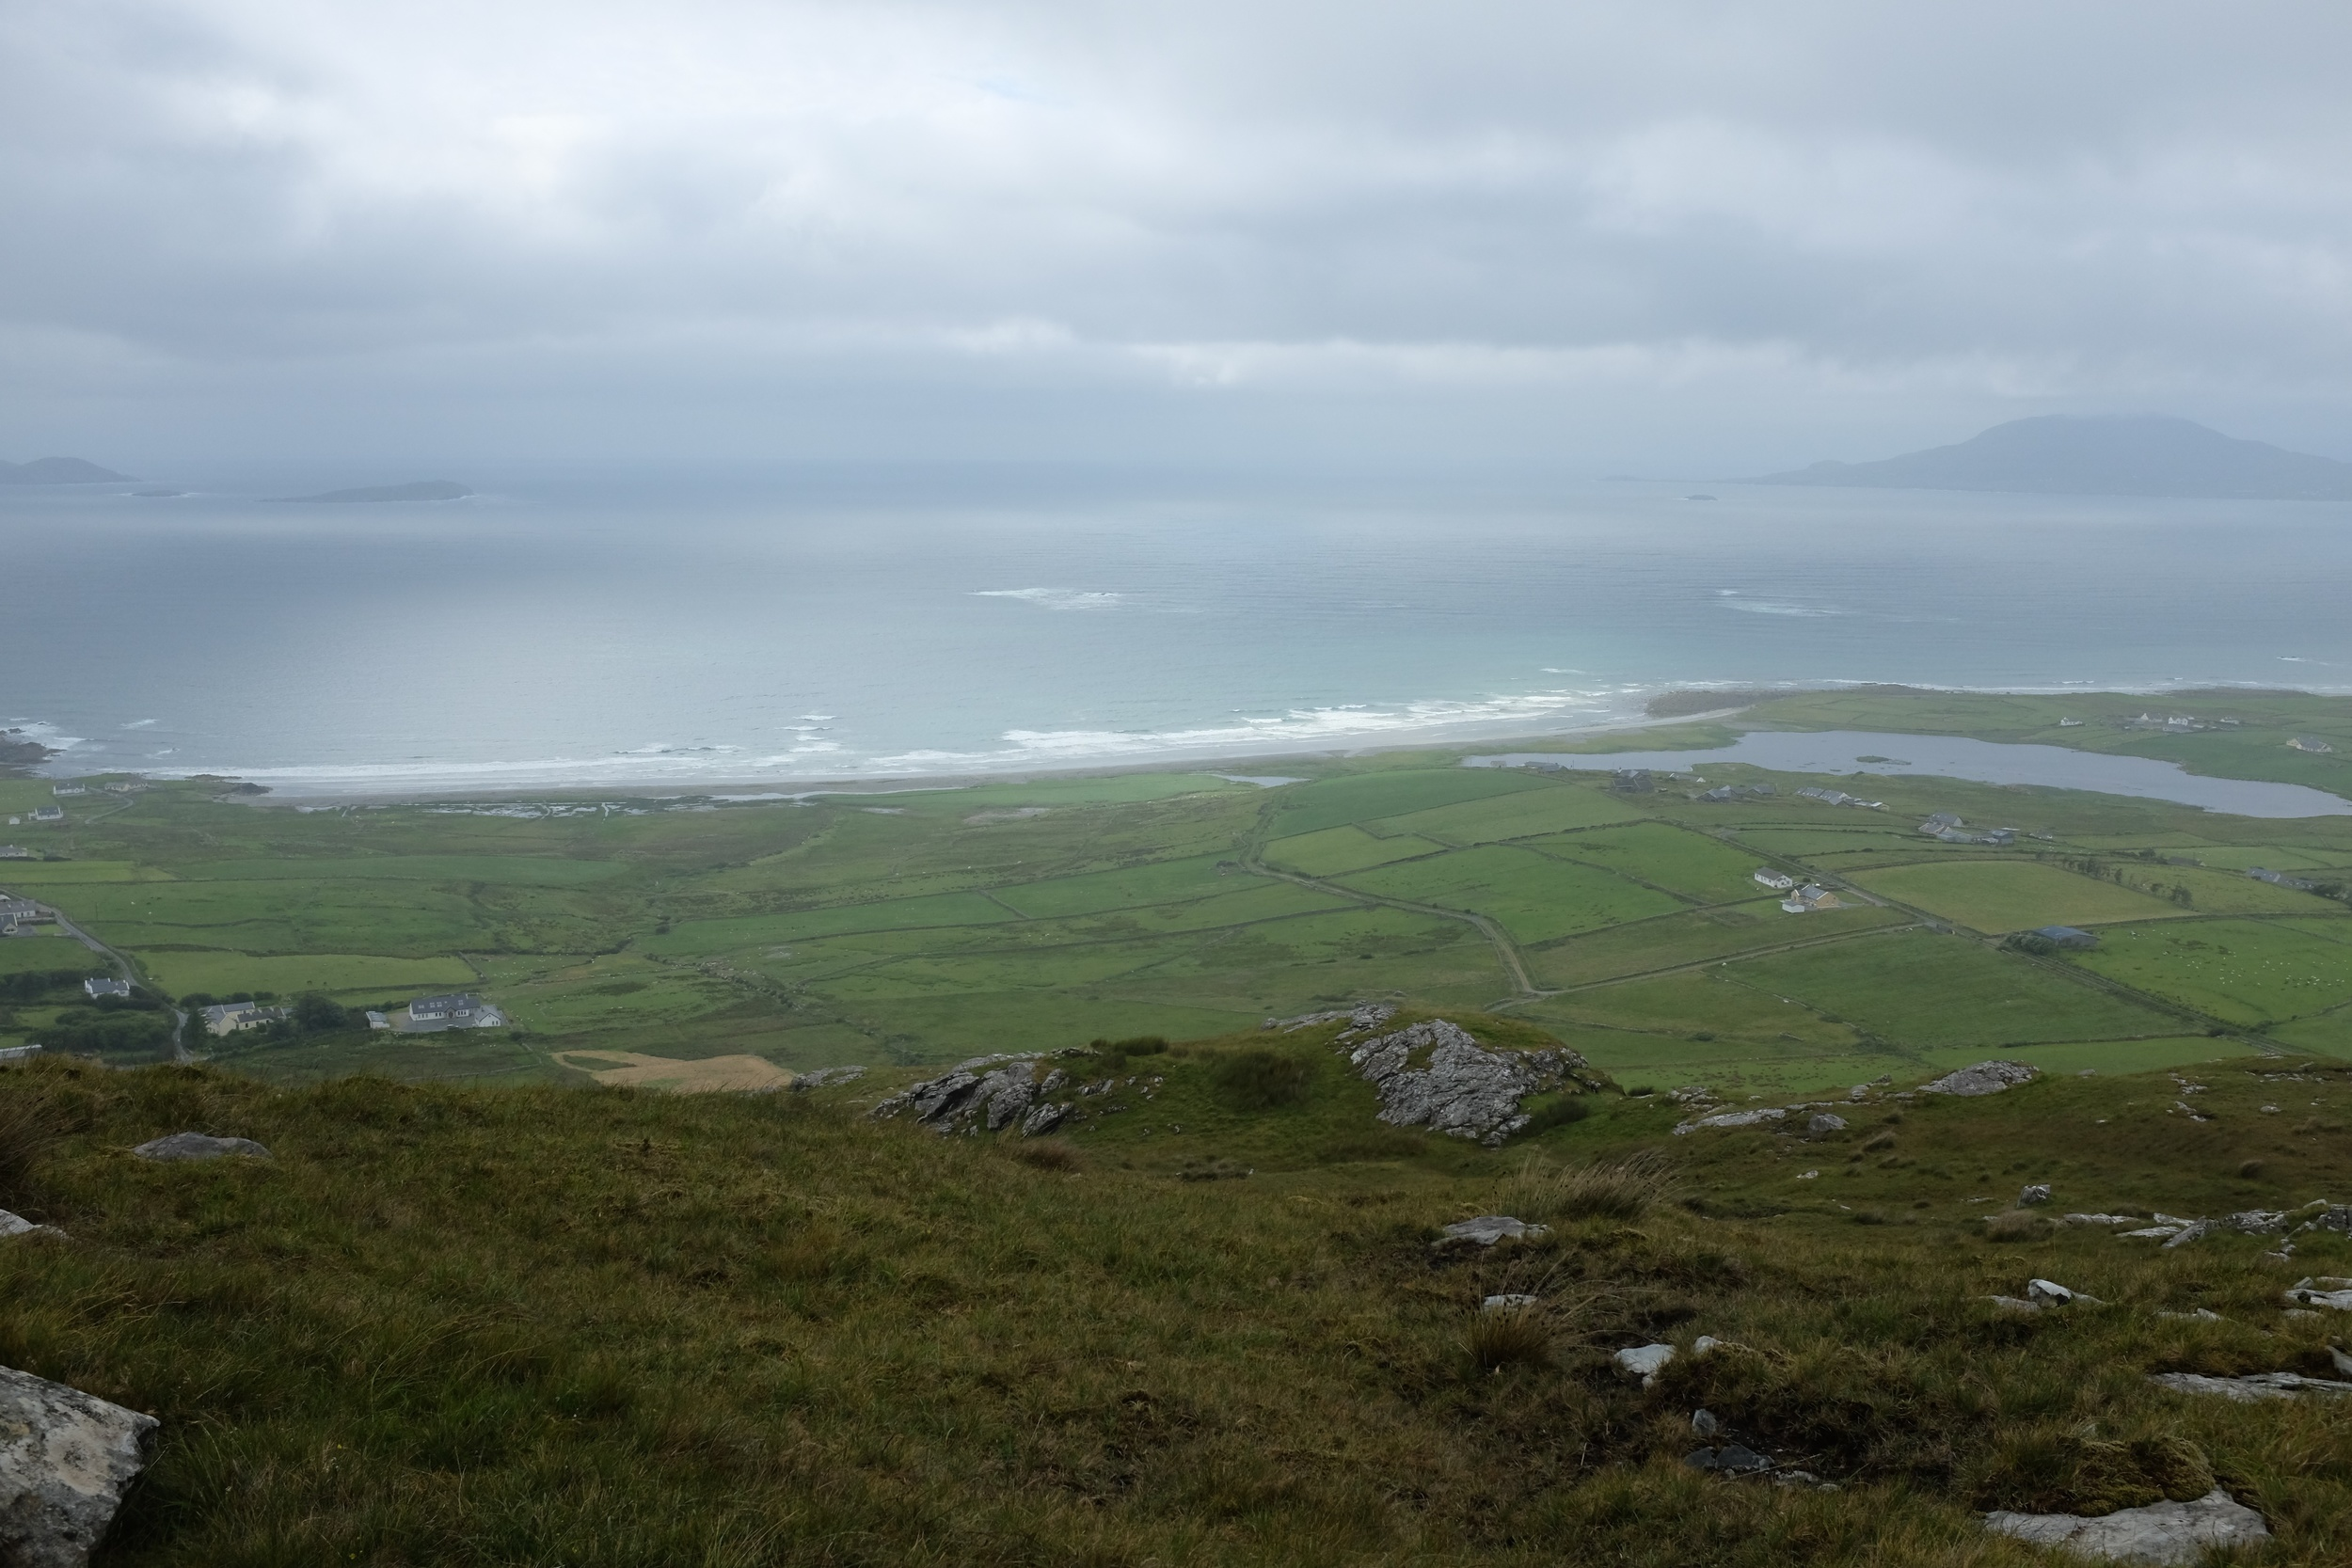 The view from the top of Killadoon Hill